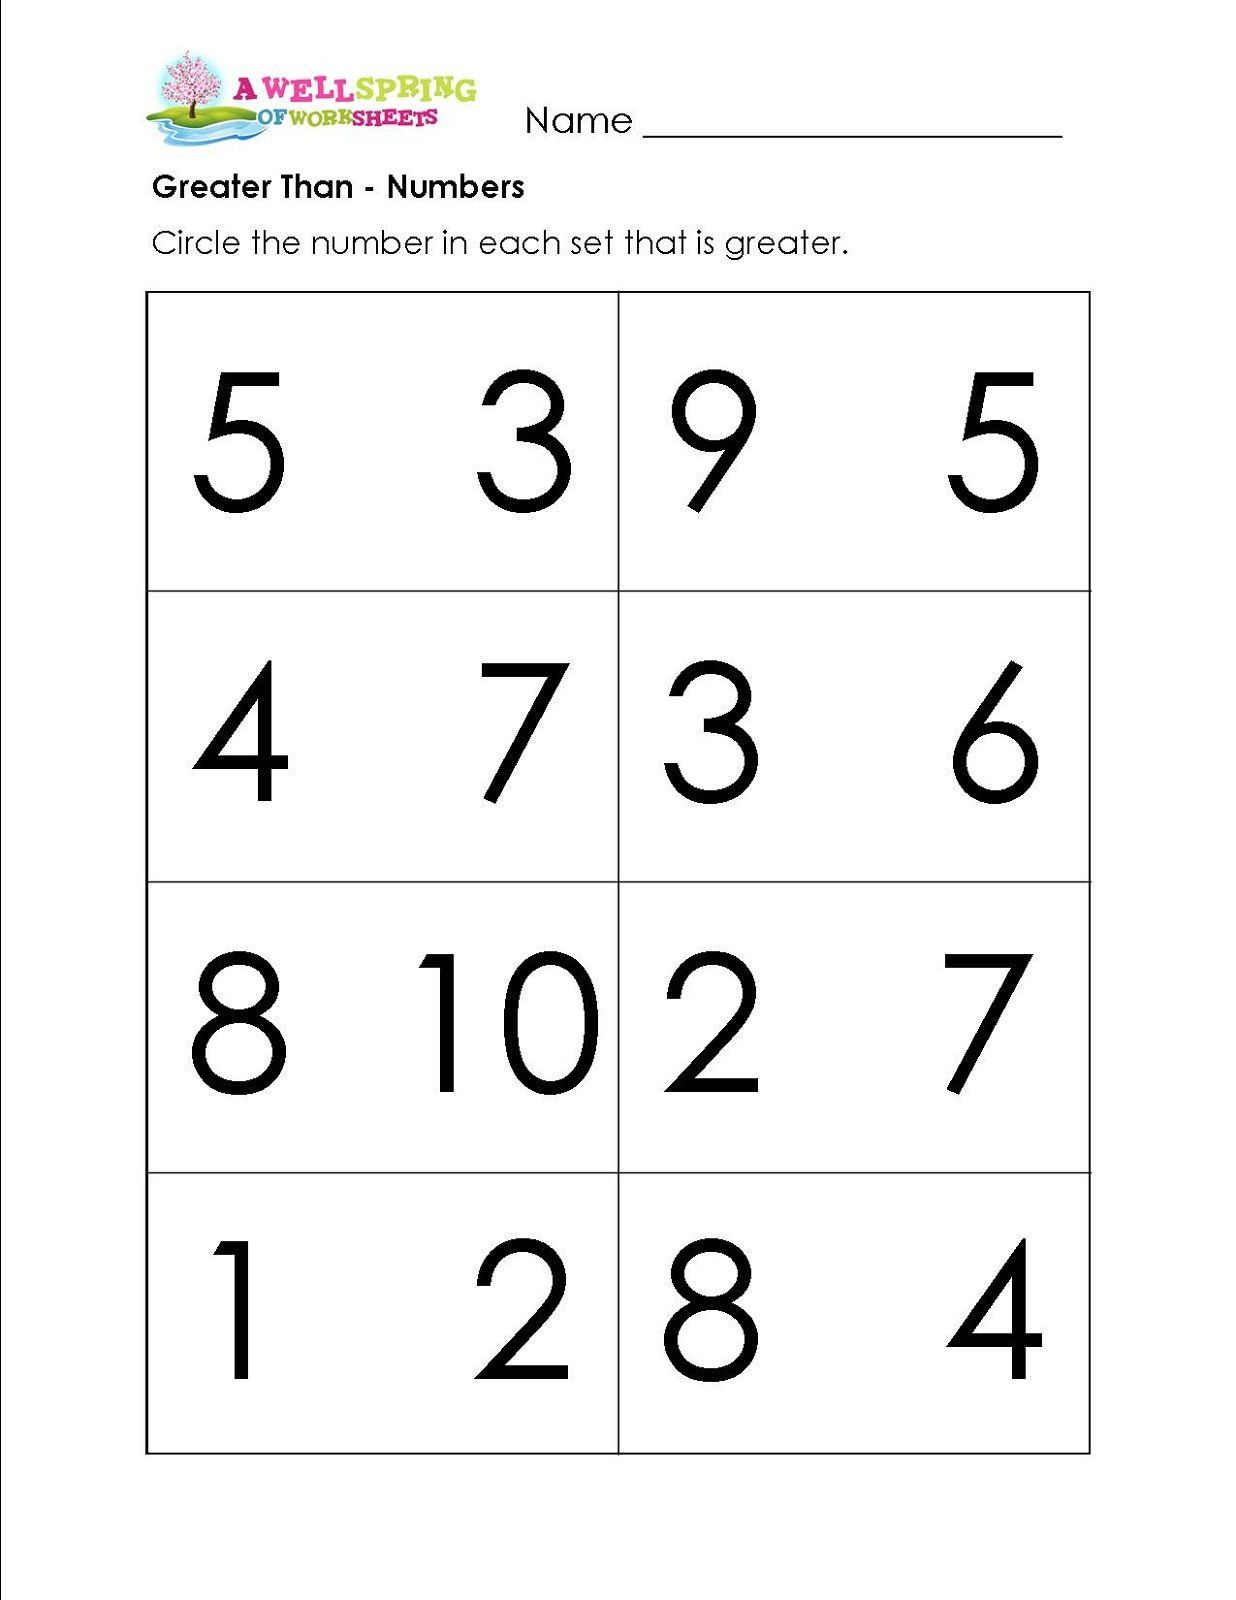 3 Preschool Worksheet Counting By 2s In